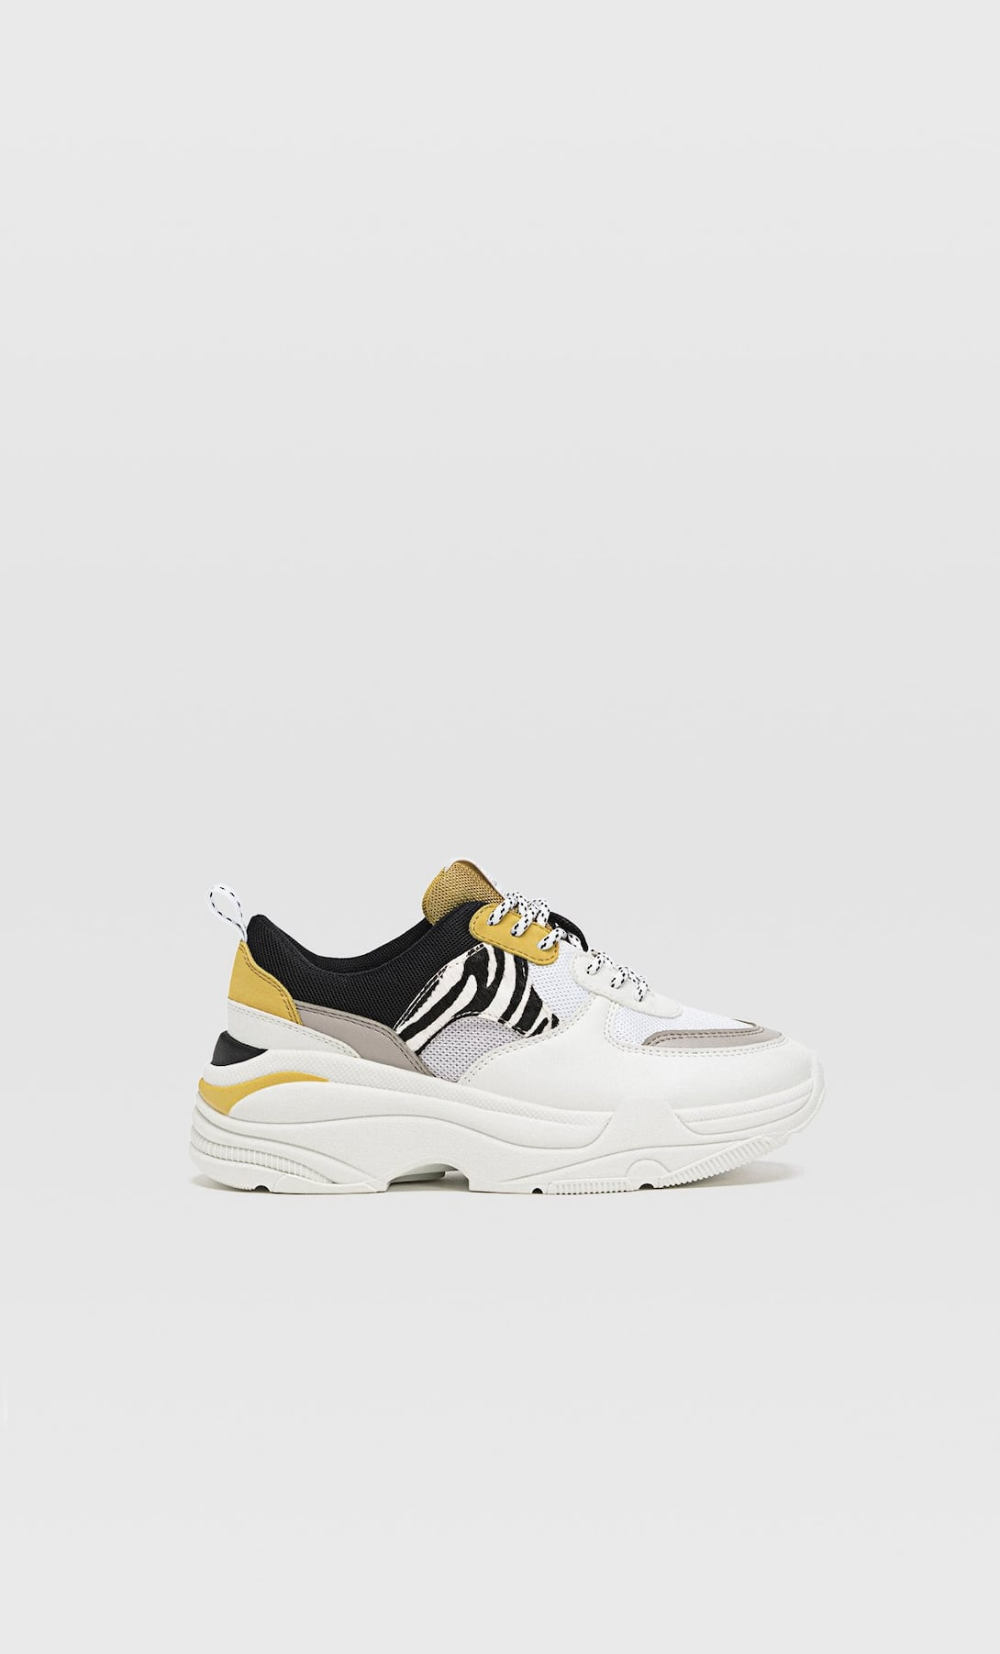 Contrast Chunky Sole Trainers Women S Trainers Stradivarius United Kingdom Trainers Women Sneakers Sport Shoes